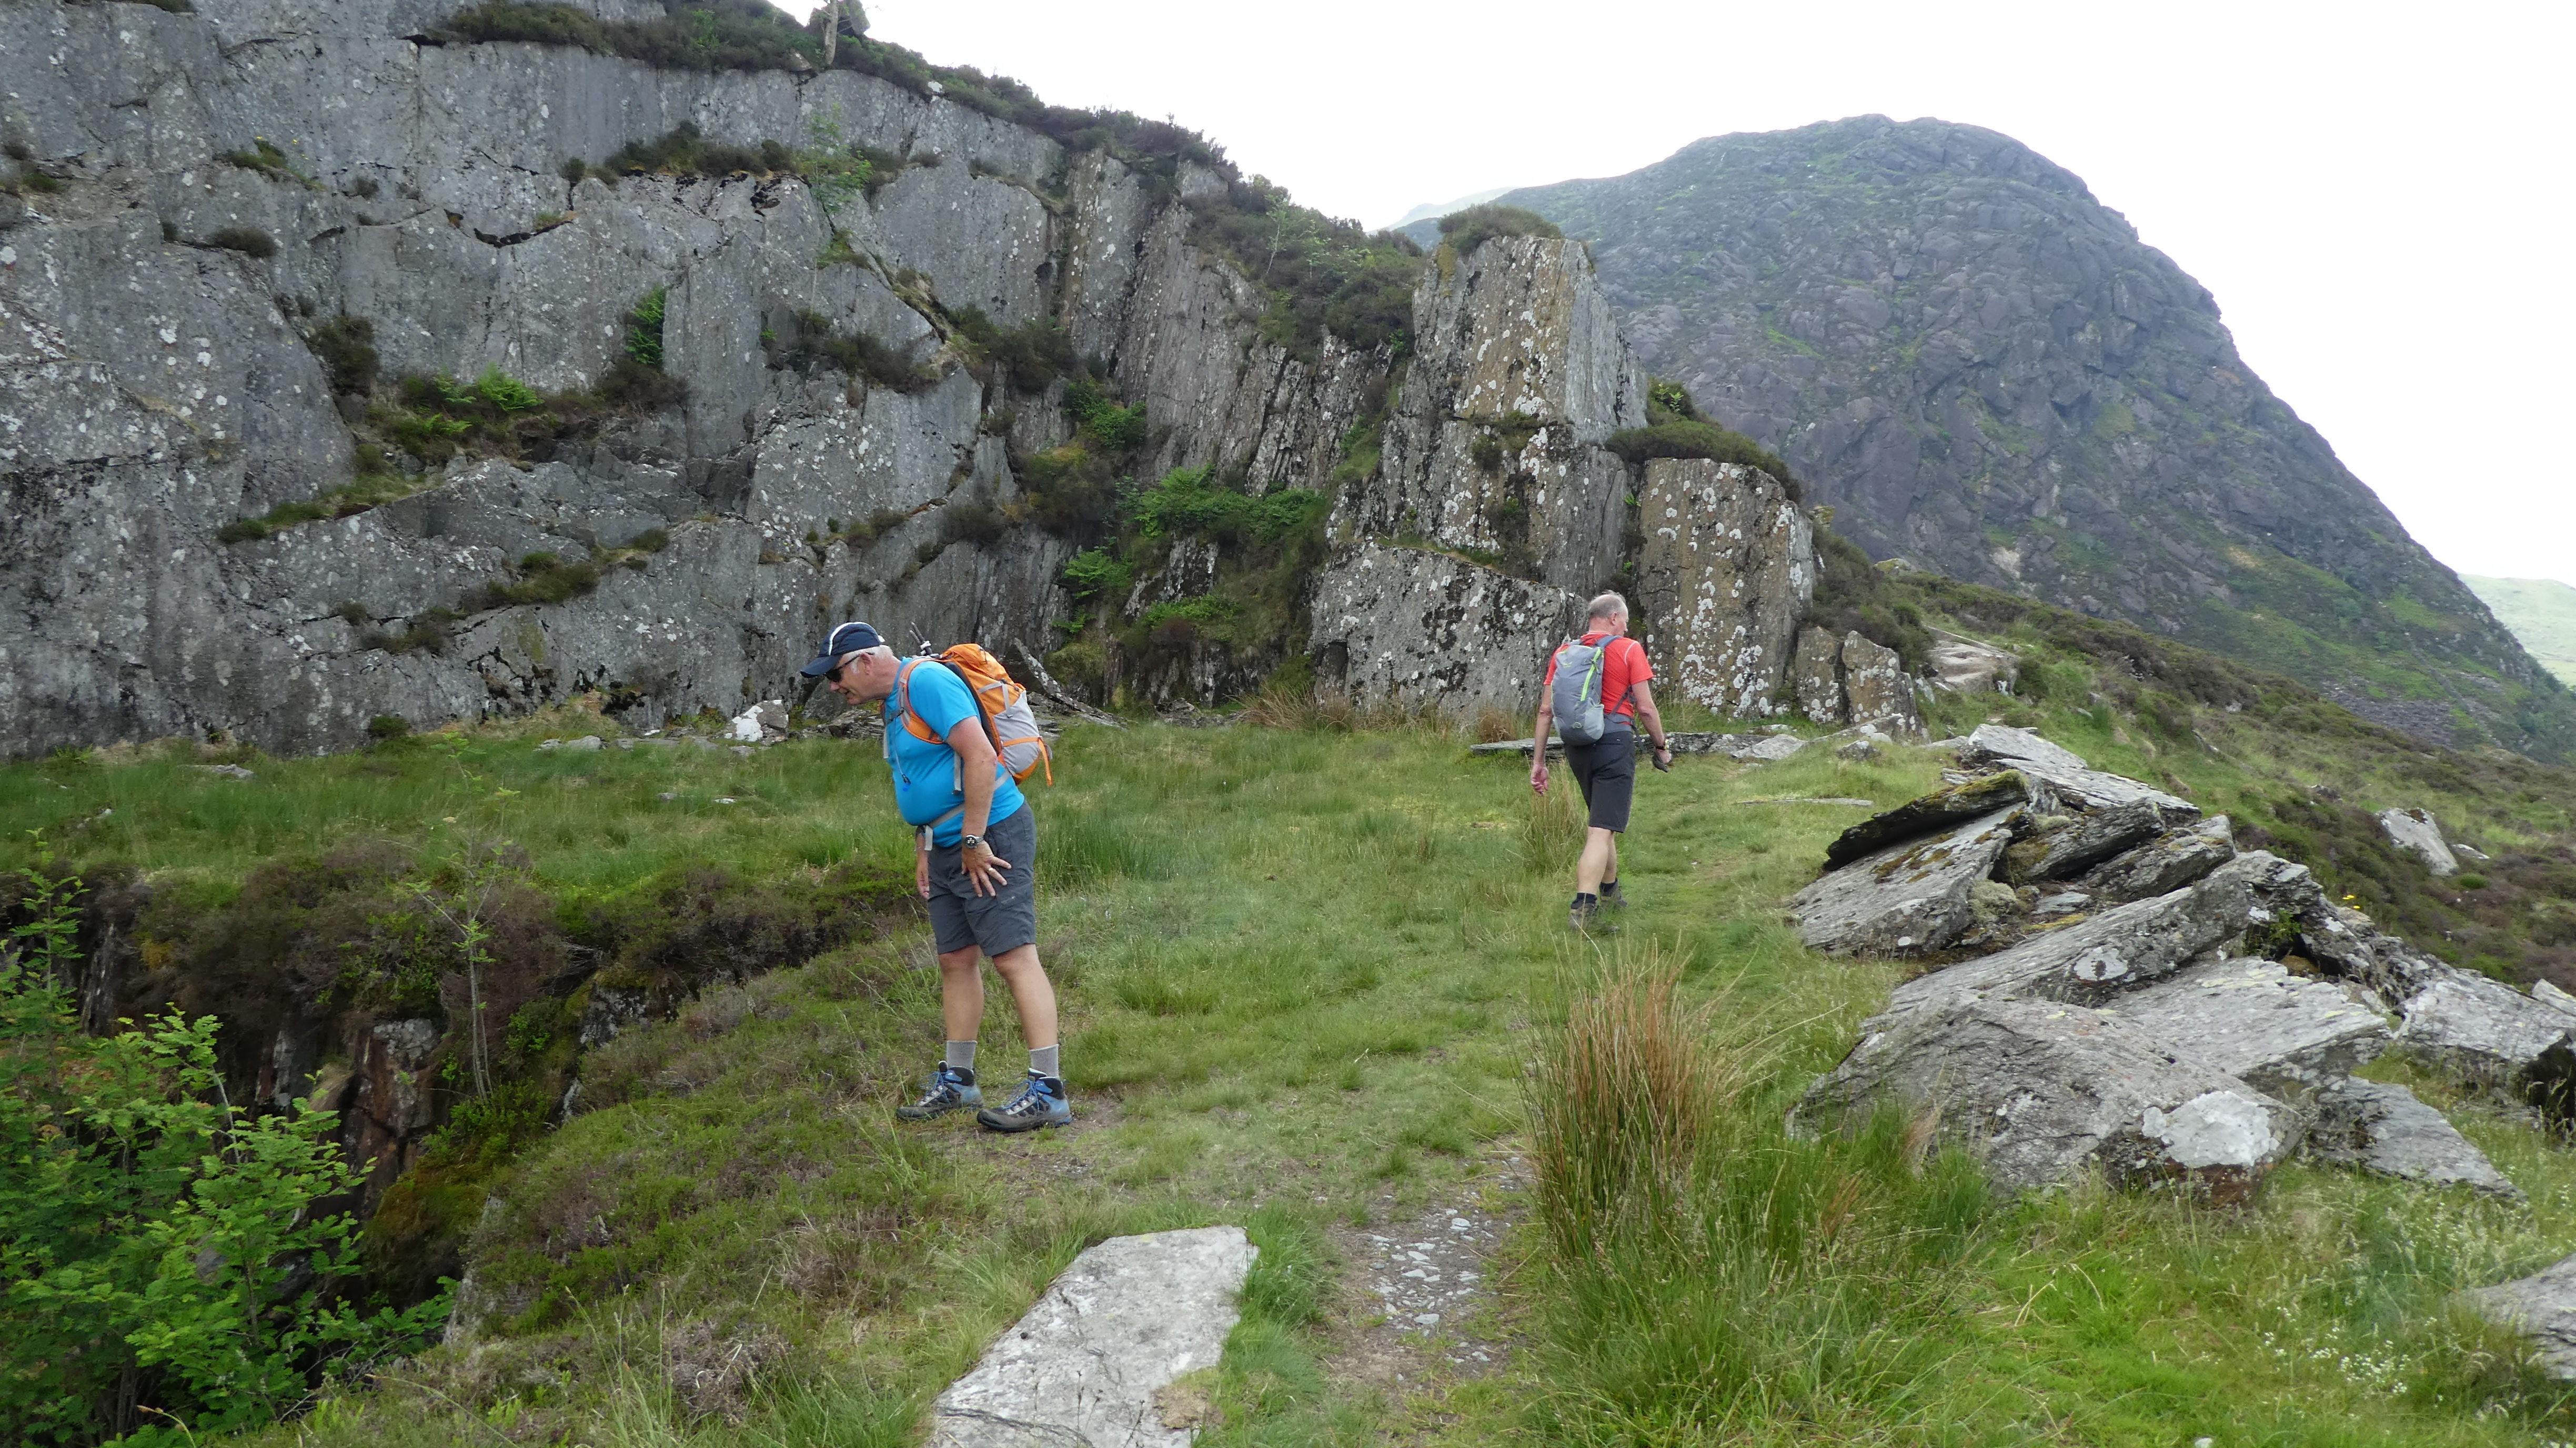 Paul and Ed walking through the quarry on Sunday, Photo by Mike Goodyer